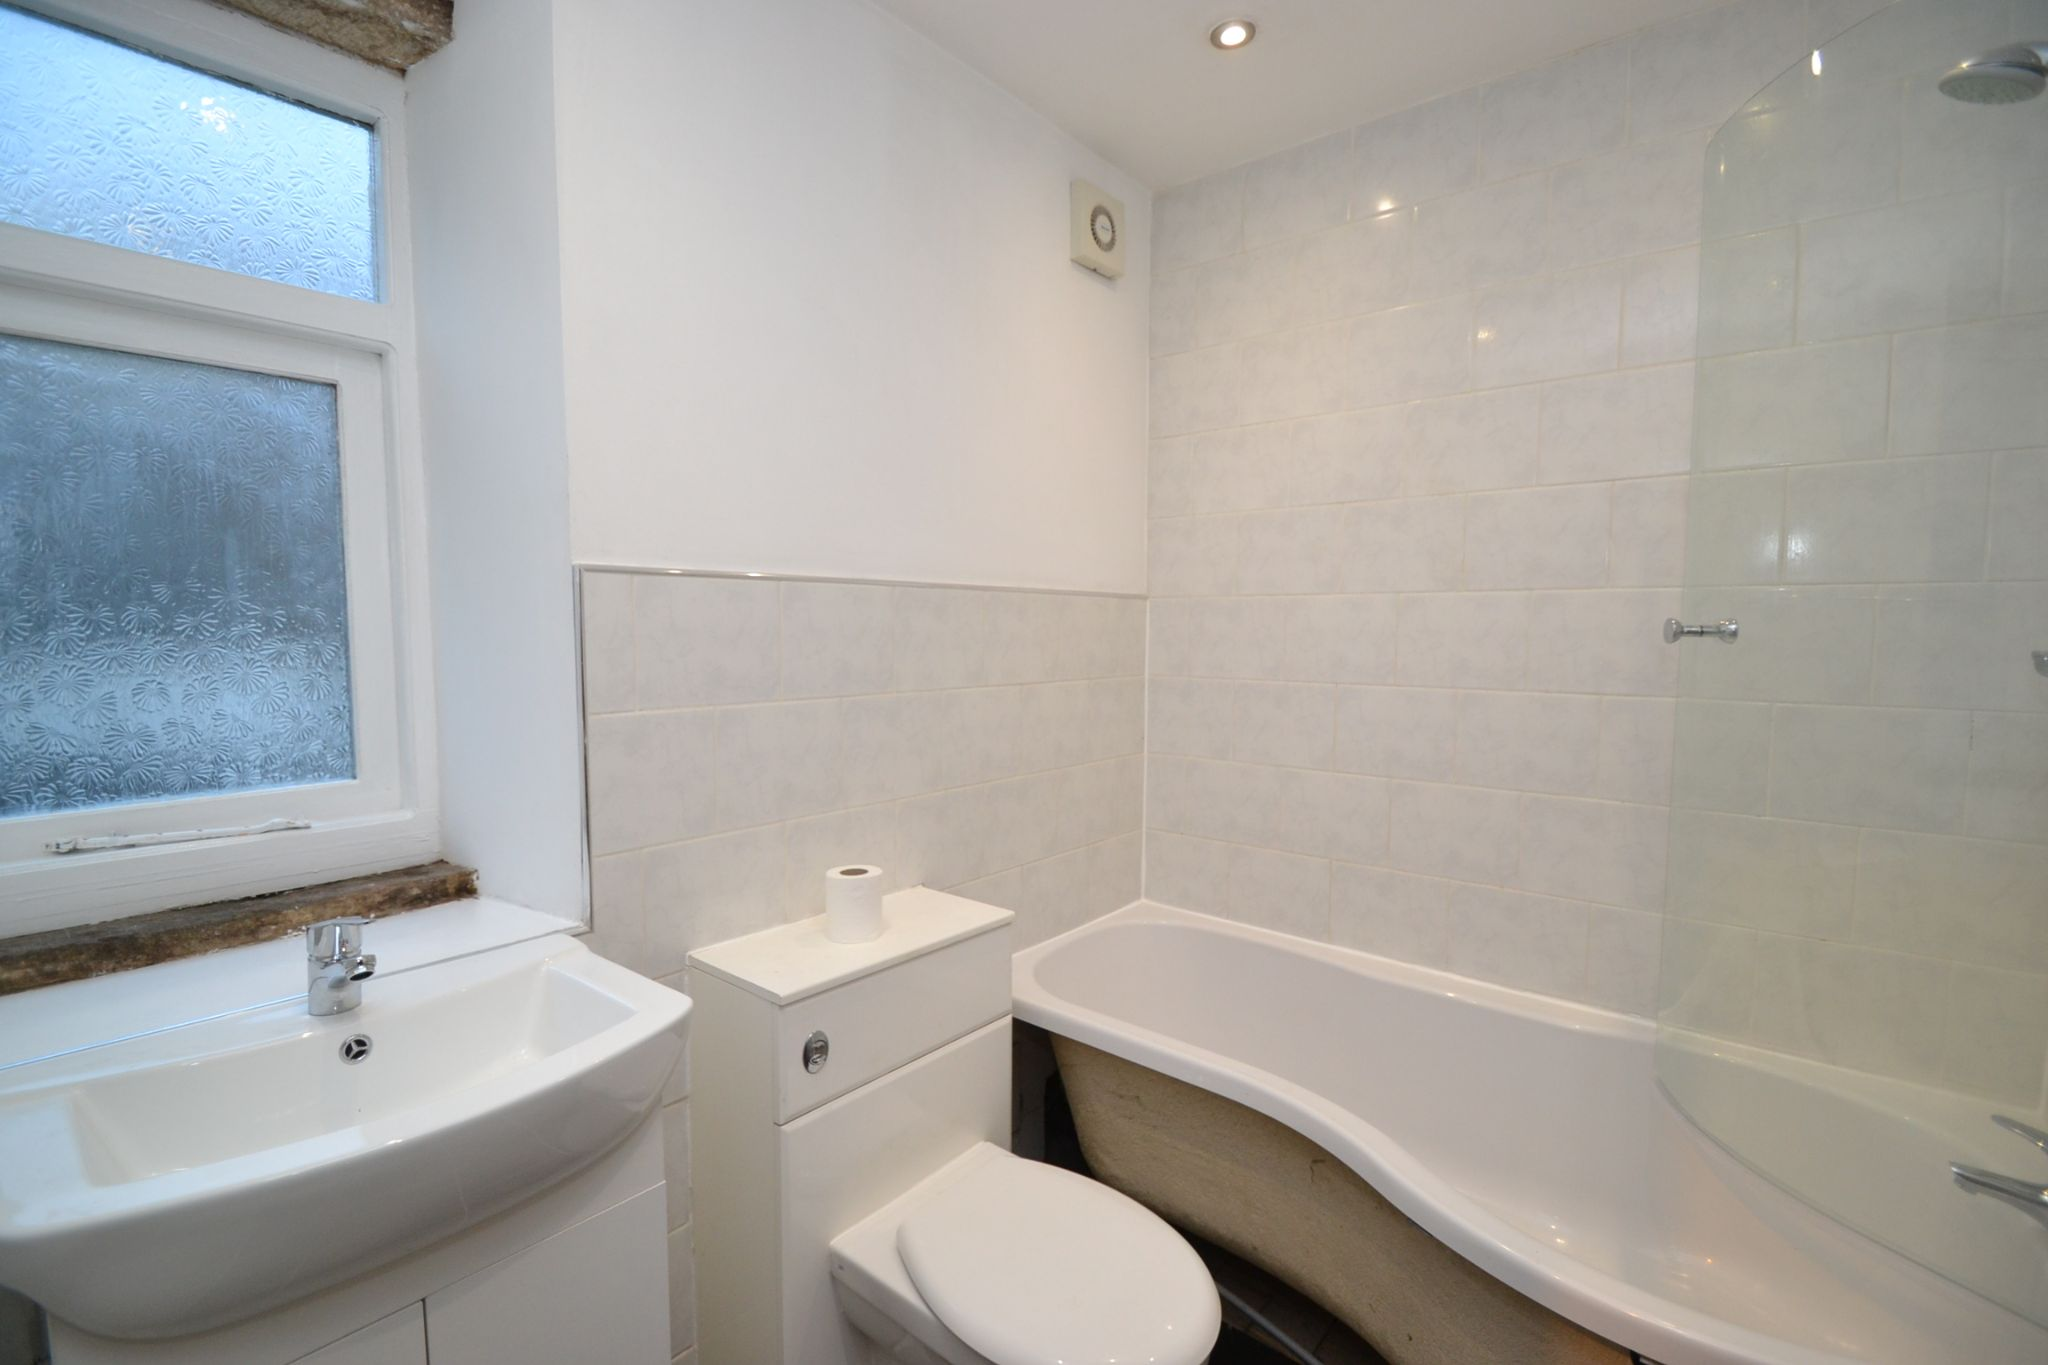 3 Bedroom End Terraced House For Sale - Photograph 8